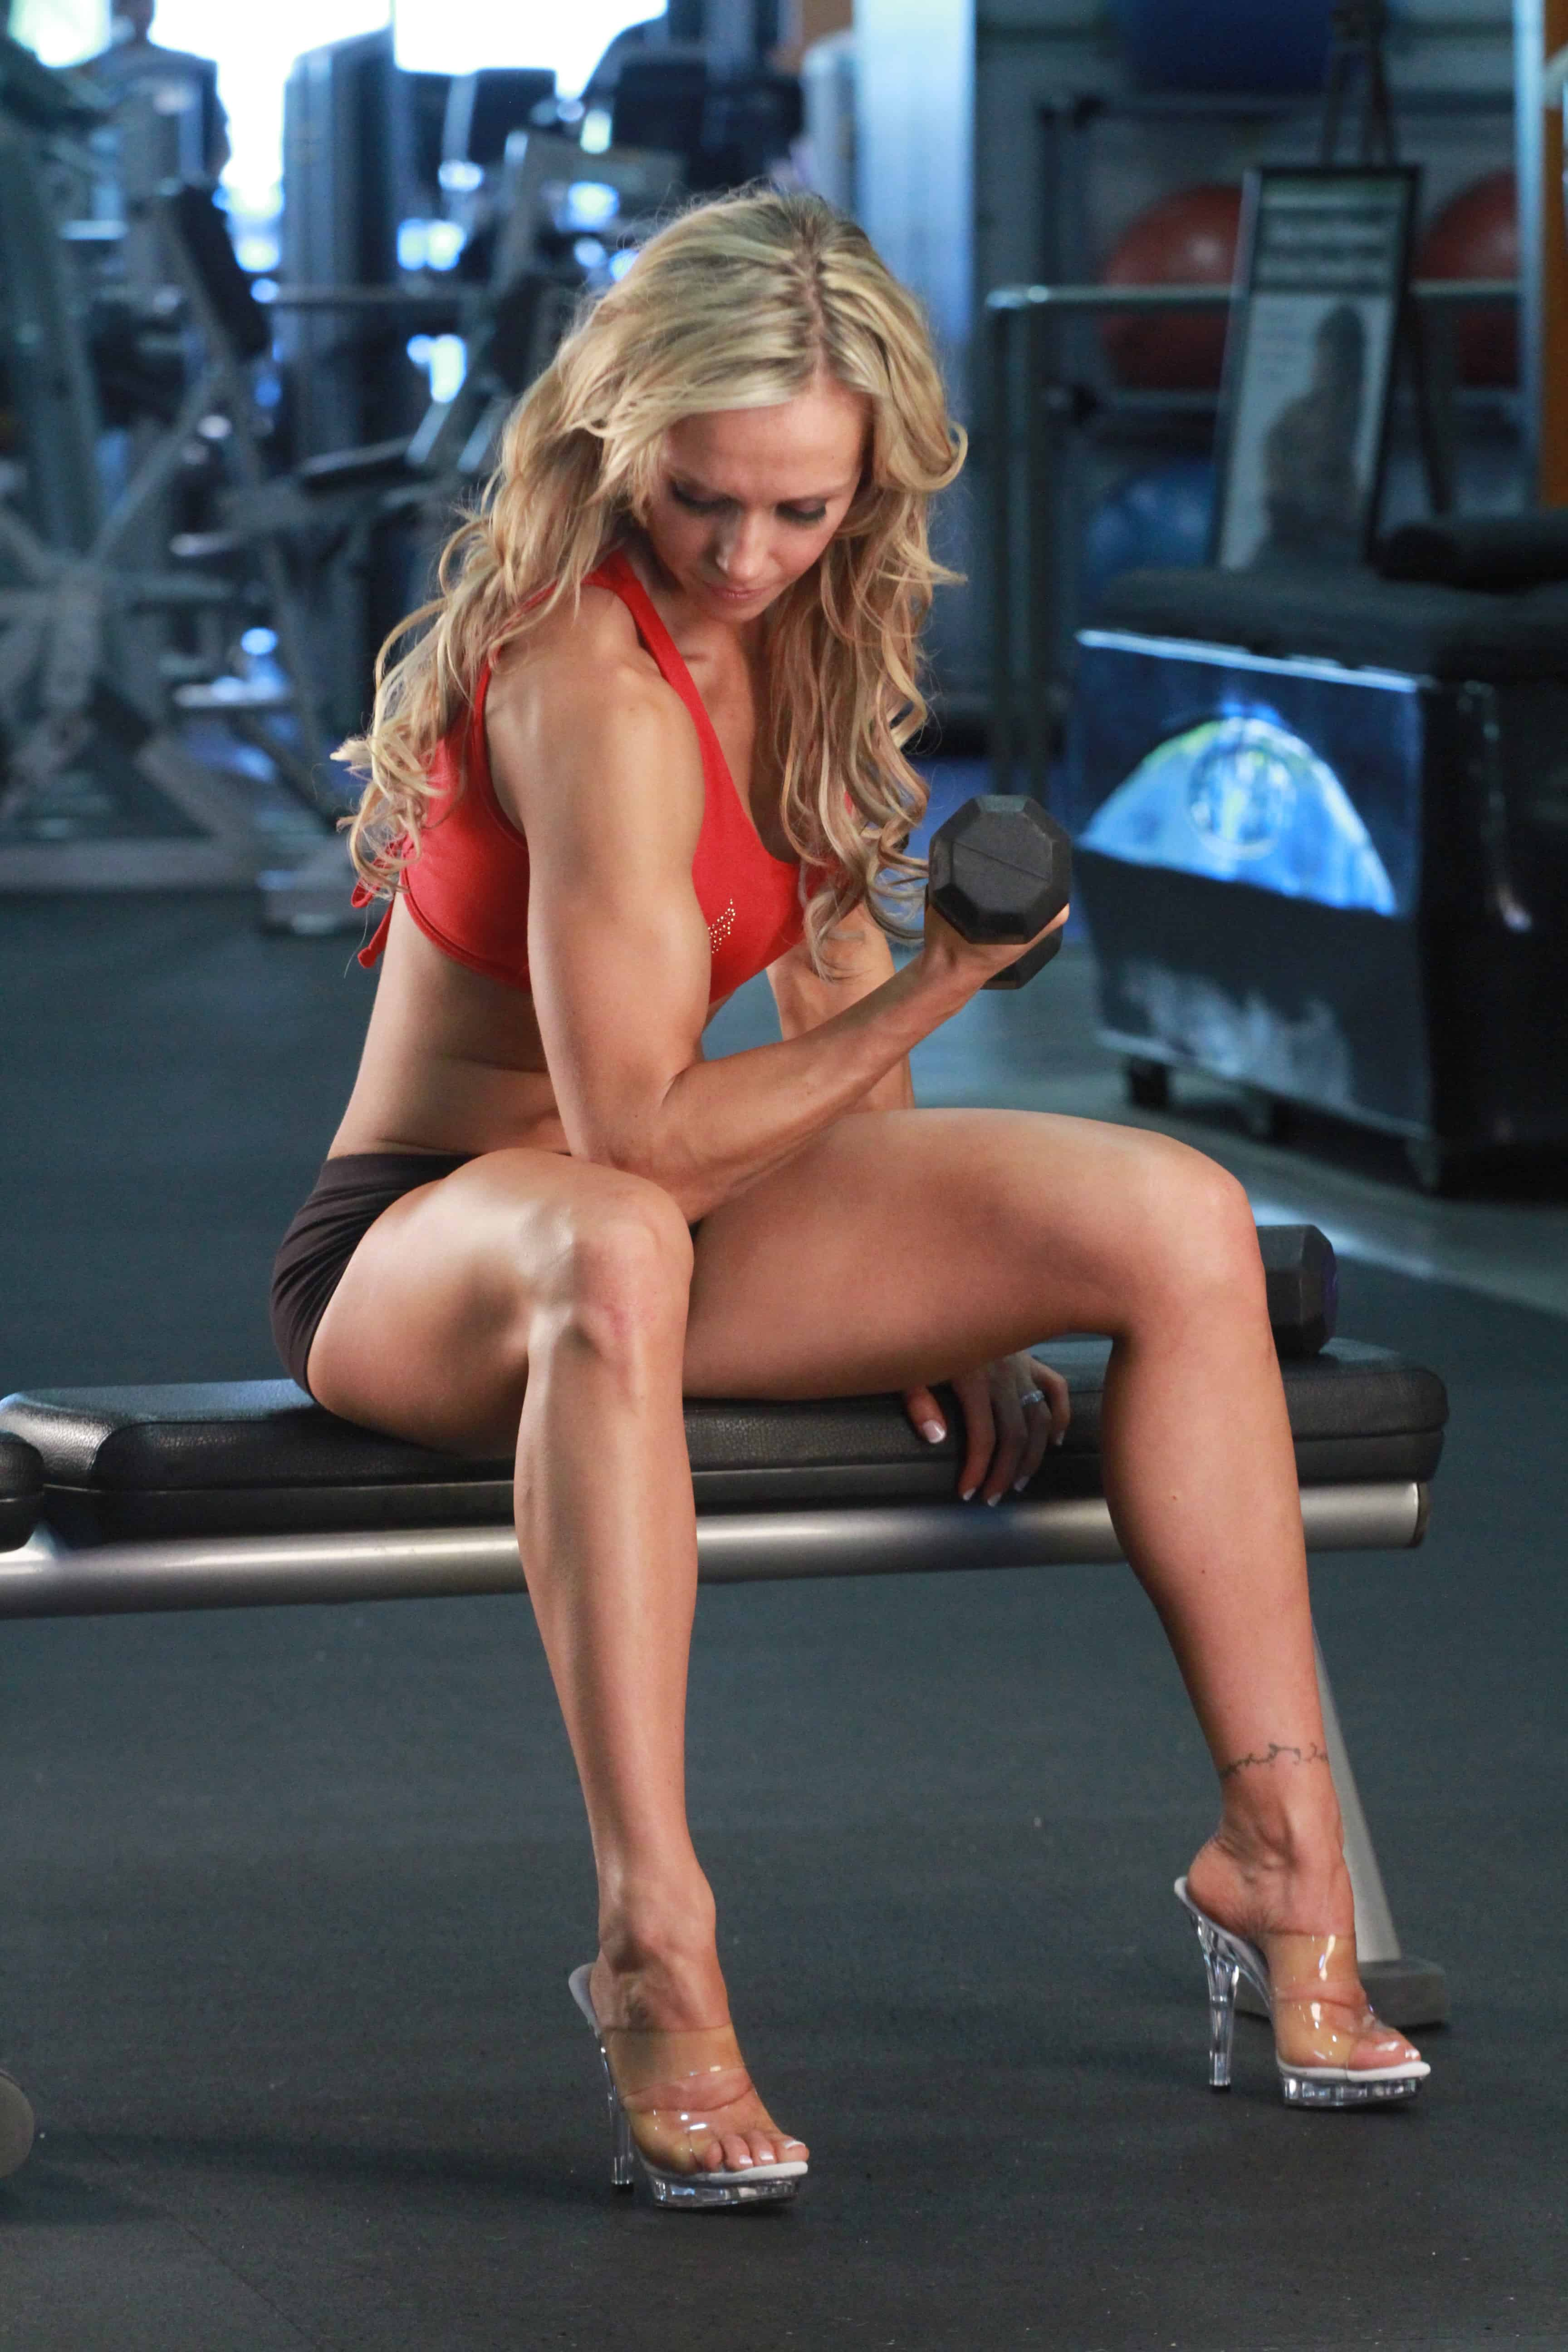 What You Must Understand About Calorie Counting In Womens Fitness Plans